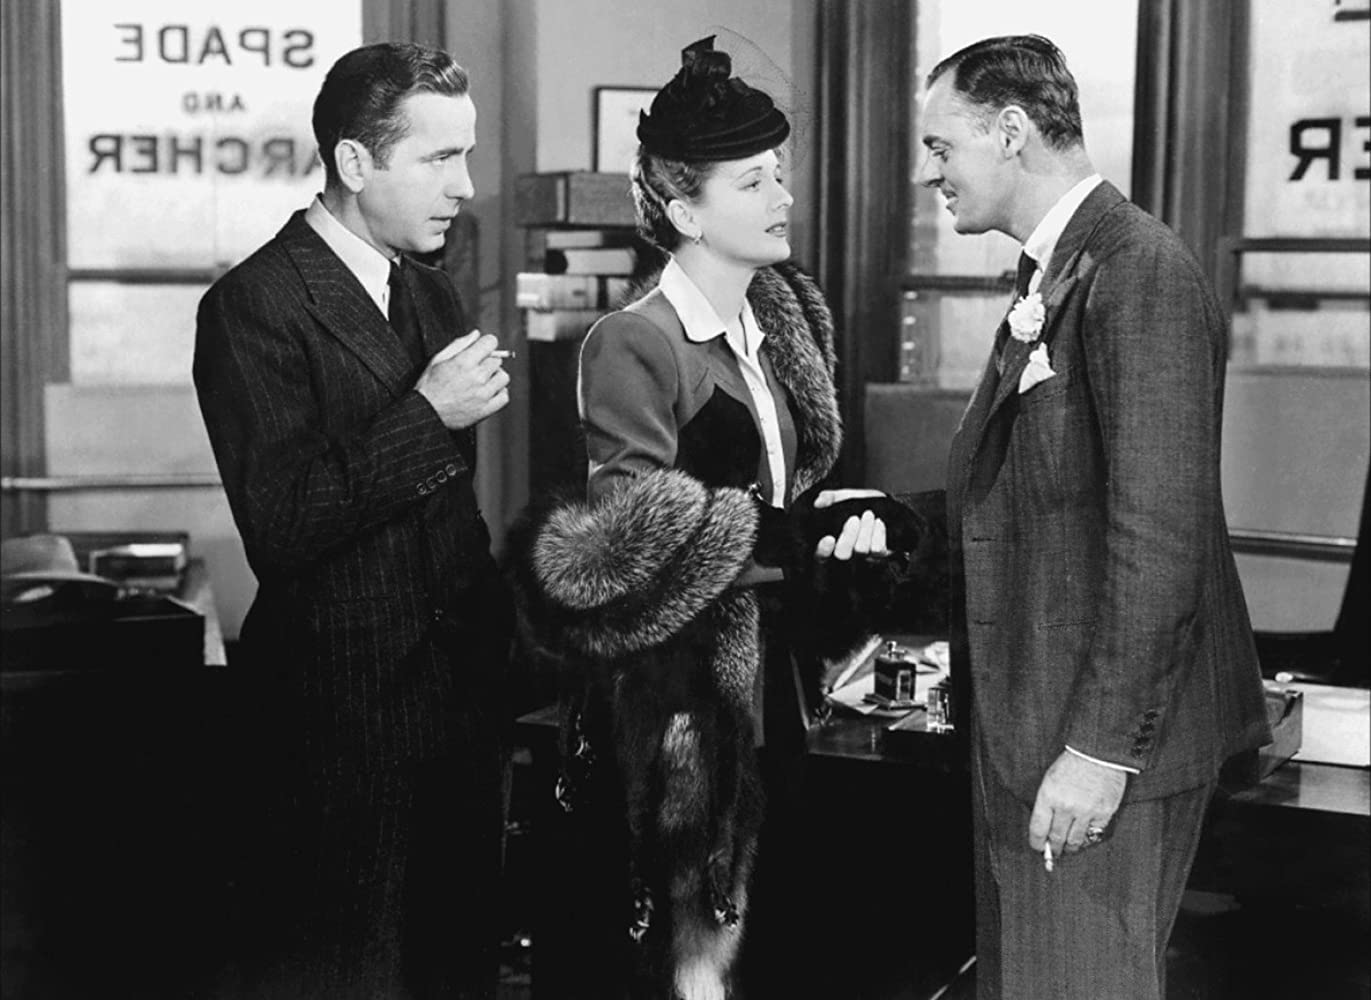 Image result for jerome cowan maltese falcon images